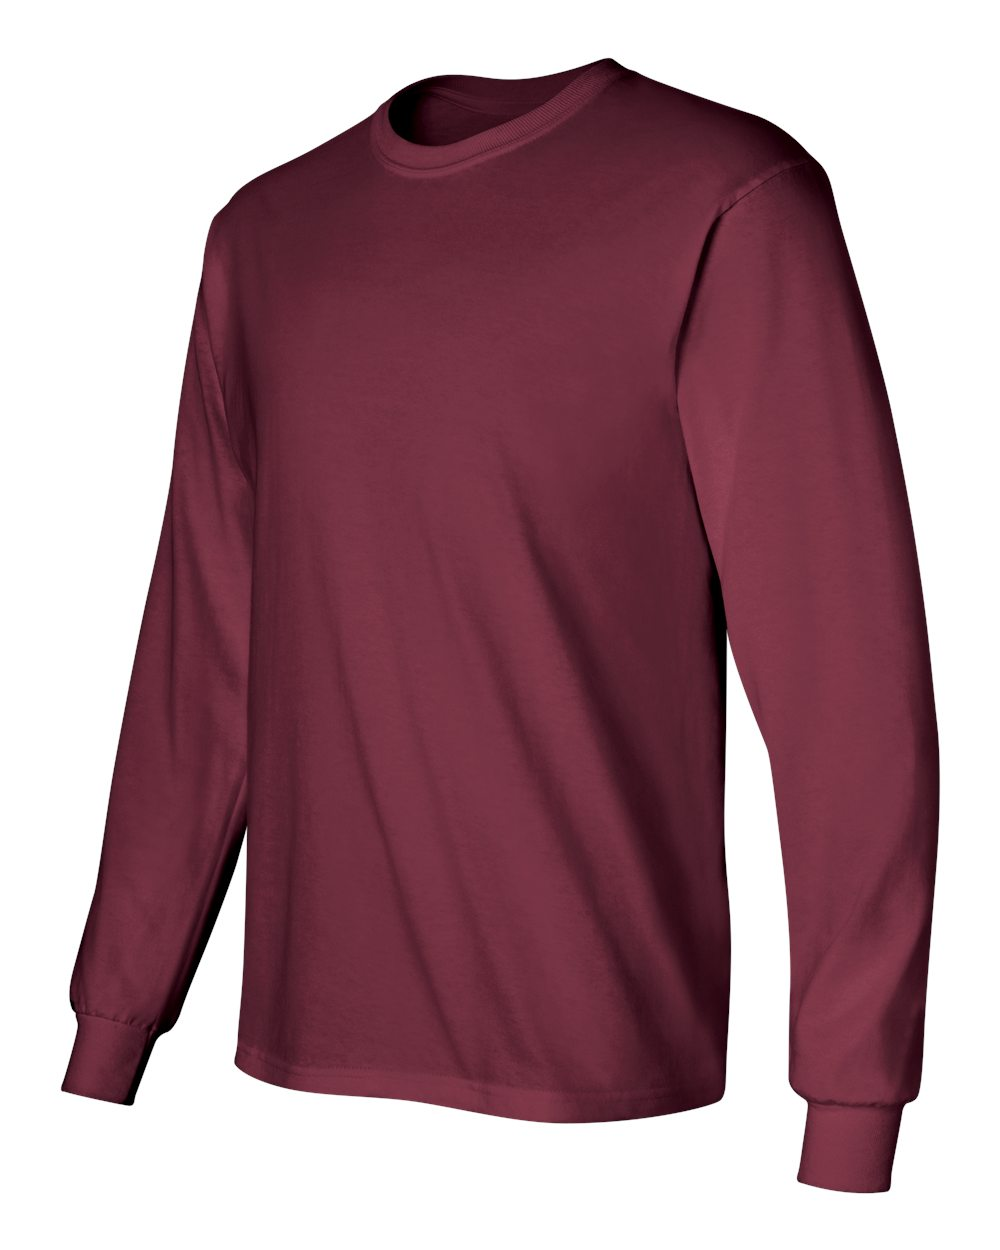 Gildan-Men-039-s-Ultra-Cotton-6-oz-Long-Sleeve-T-Shirt-G240-S-5XL thumbnail 55